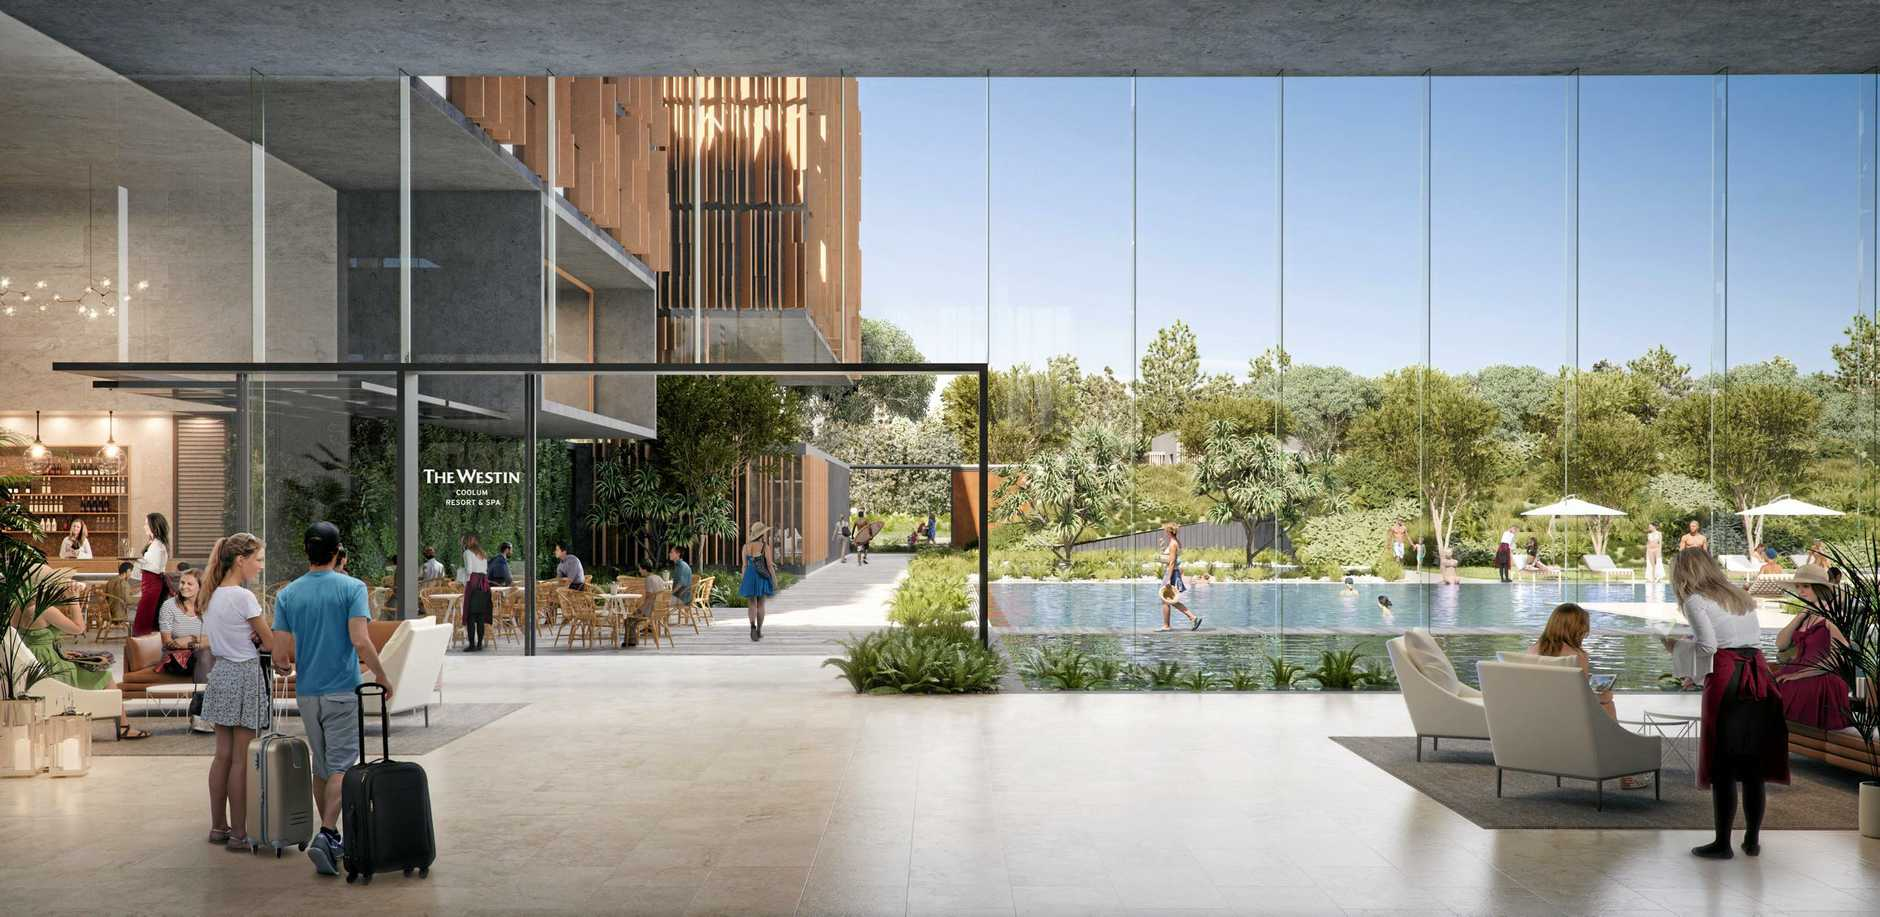 The Westin Coolum Resort and Spa is one aspect of Sekisui House's Yaroomba Beach proposal.